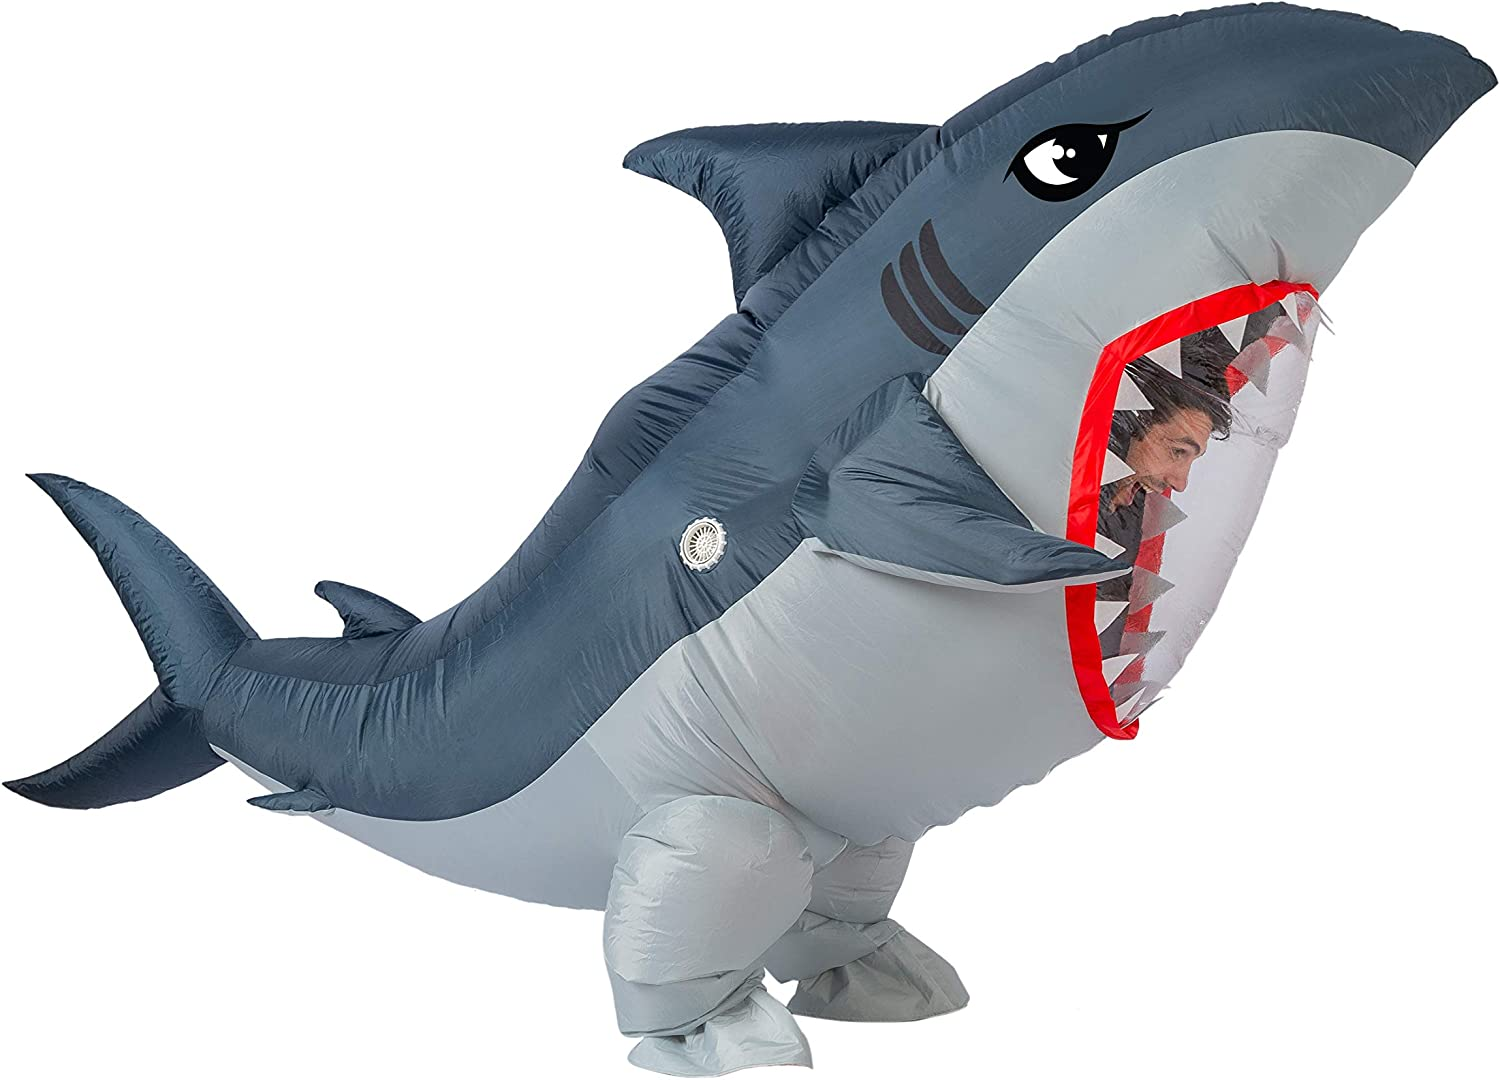 Adult Size Spooktacular Creations Inflatable Costume Full Body Shark Air Blow-up Deluxe Halloween Costume